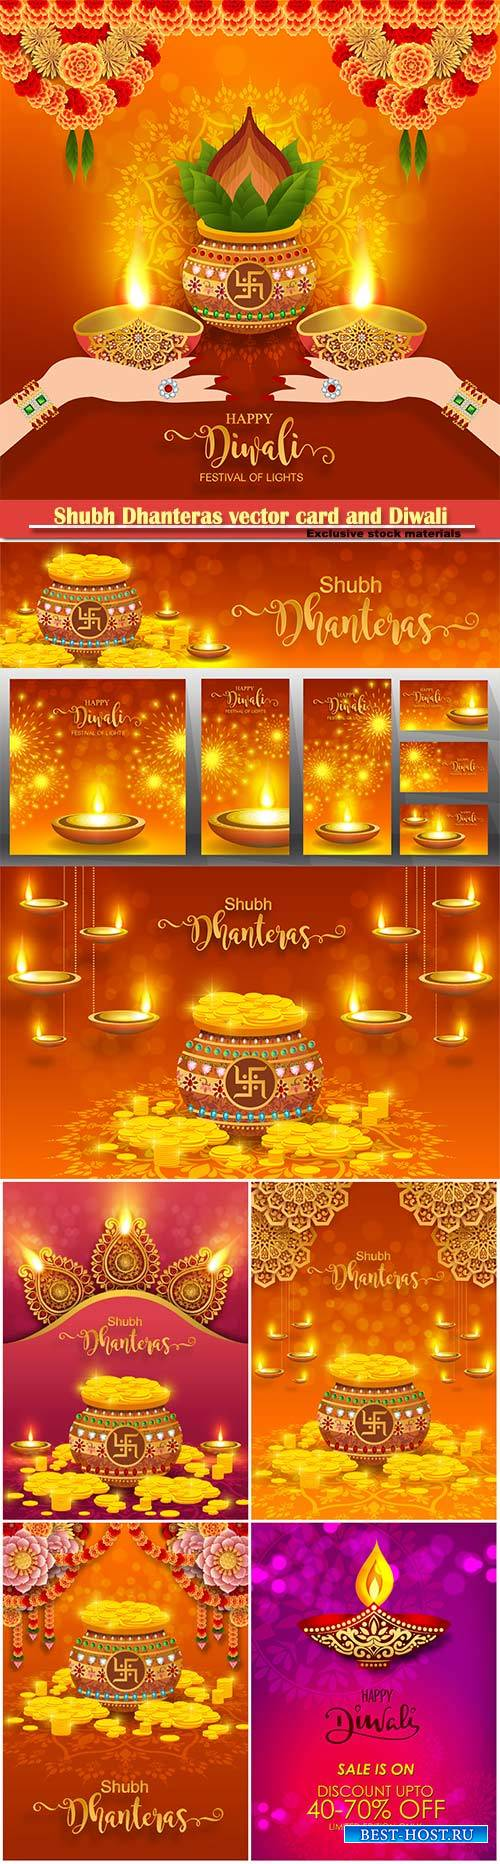 Shubh Dhanteras festival vector card and Diwali vector design